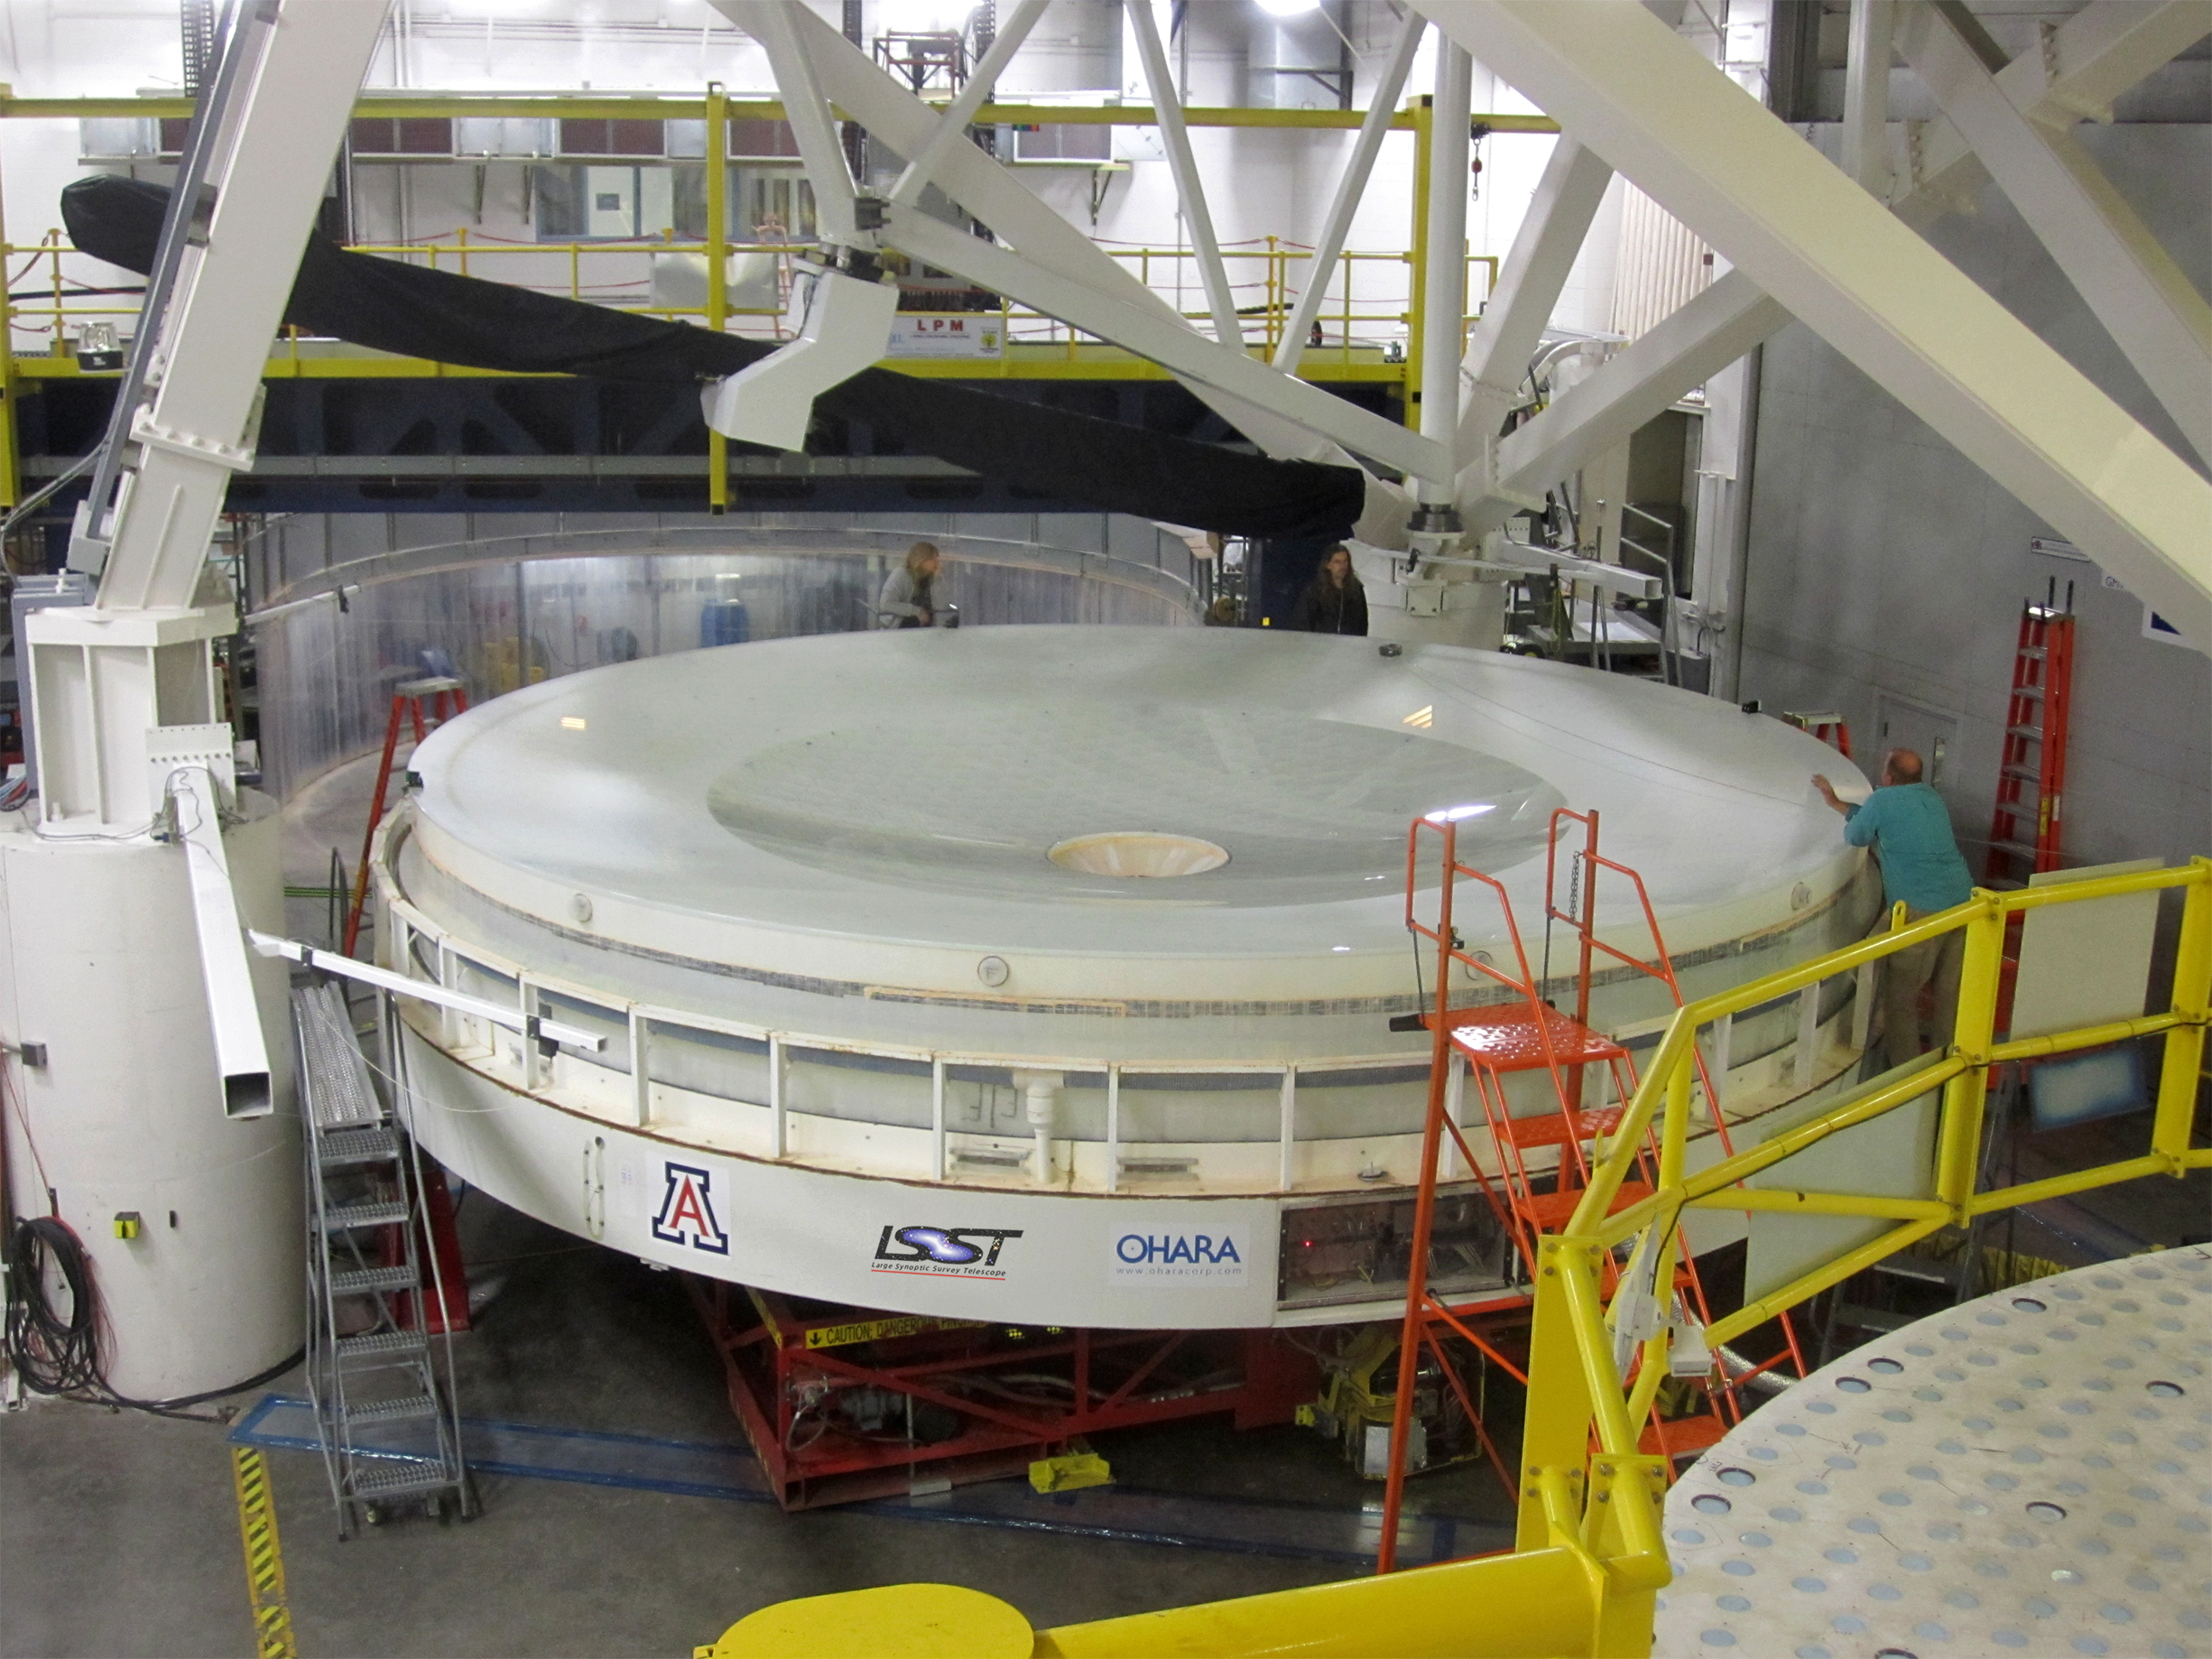 The LSST's primary and tertiary mirrors are created from a single giant piece of glass.